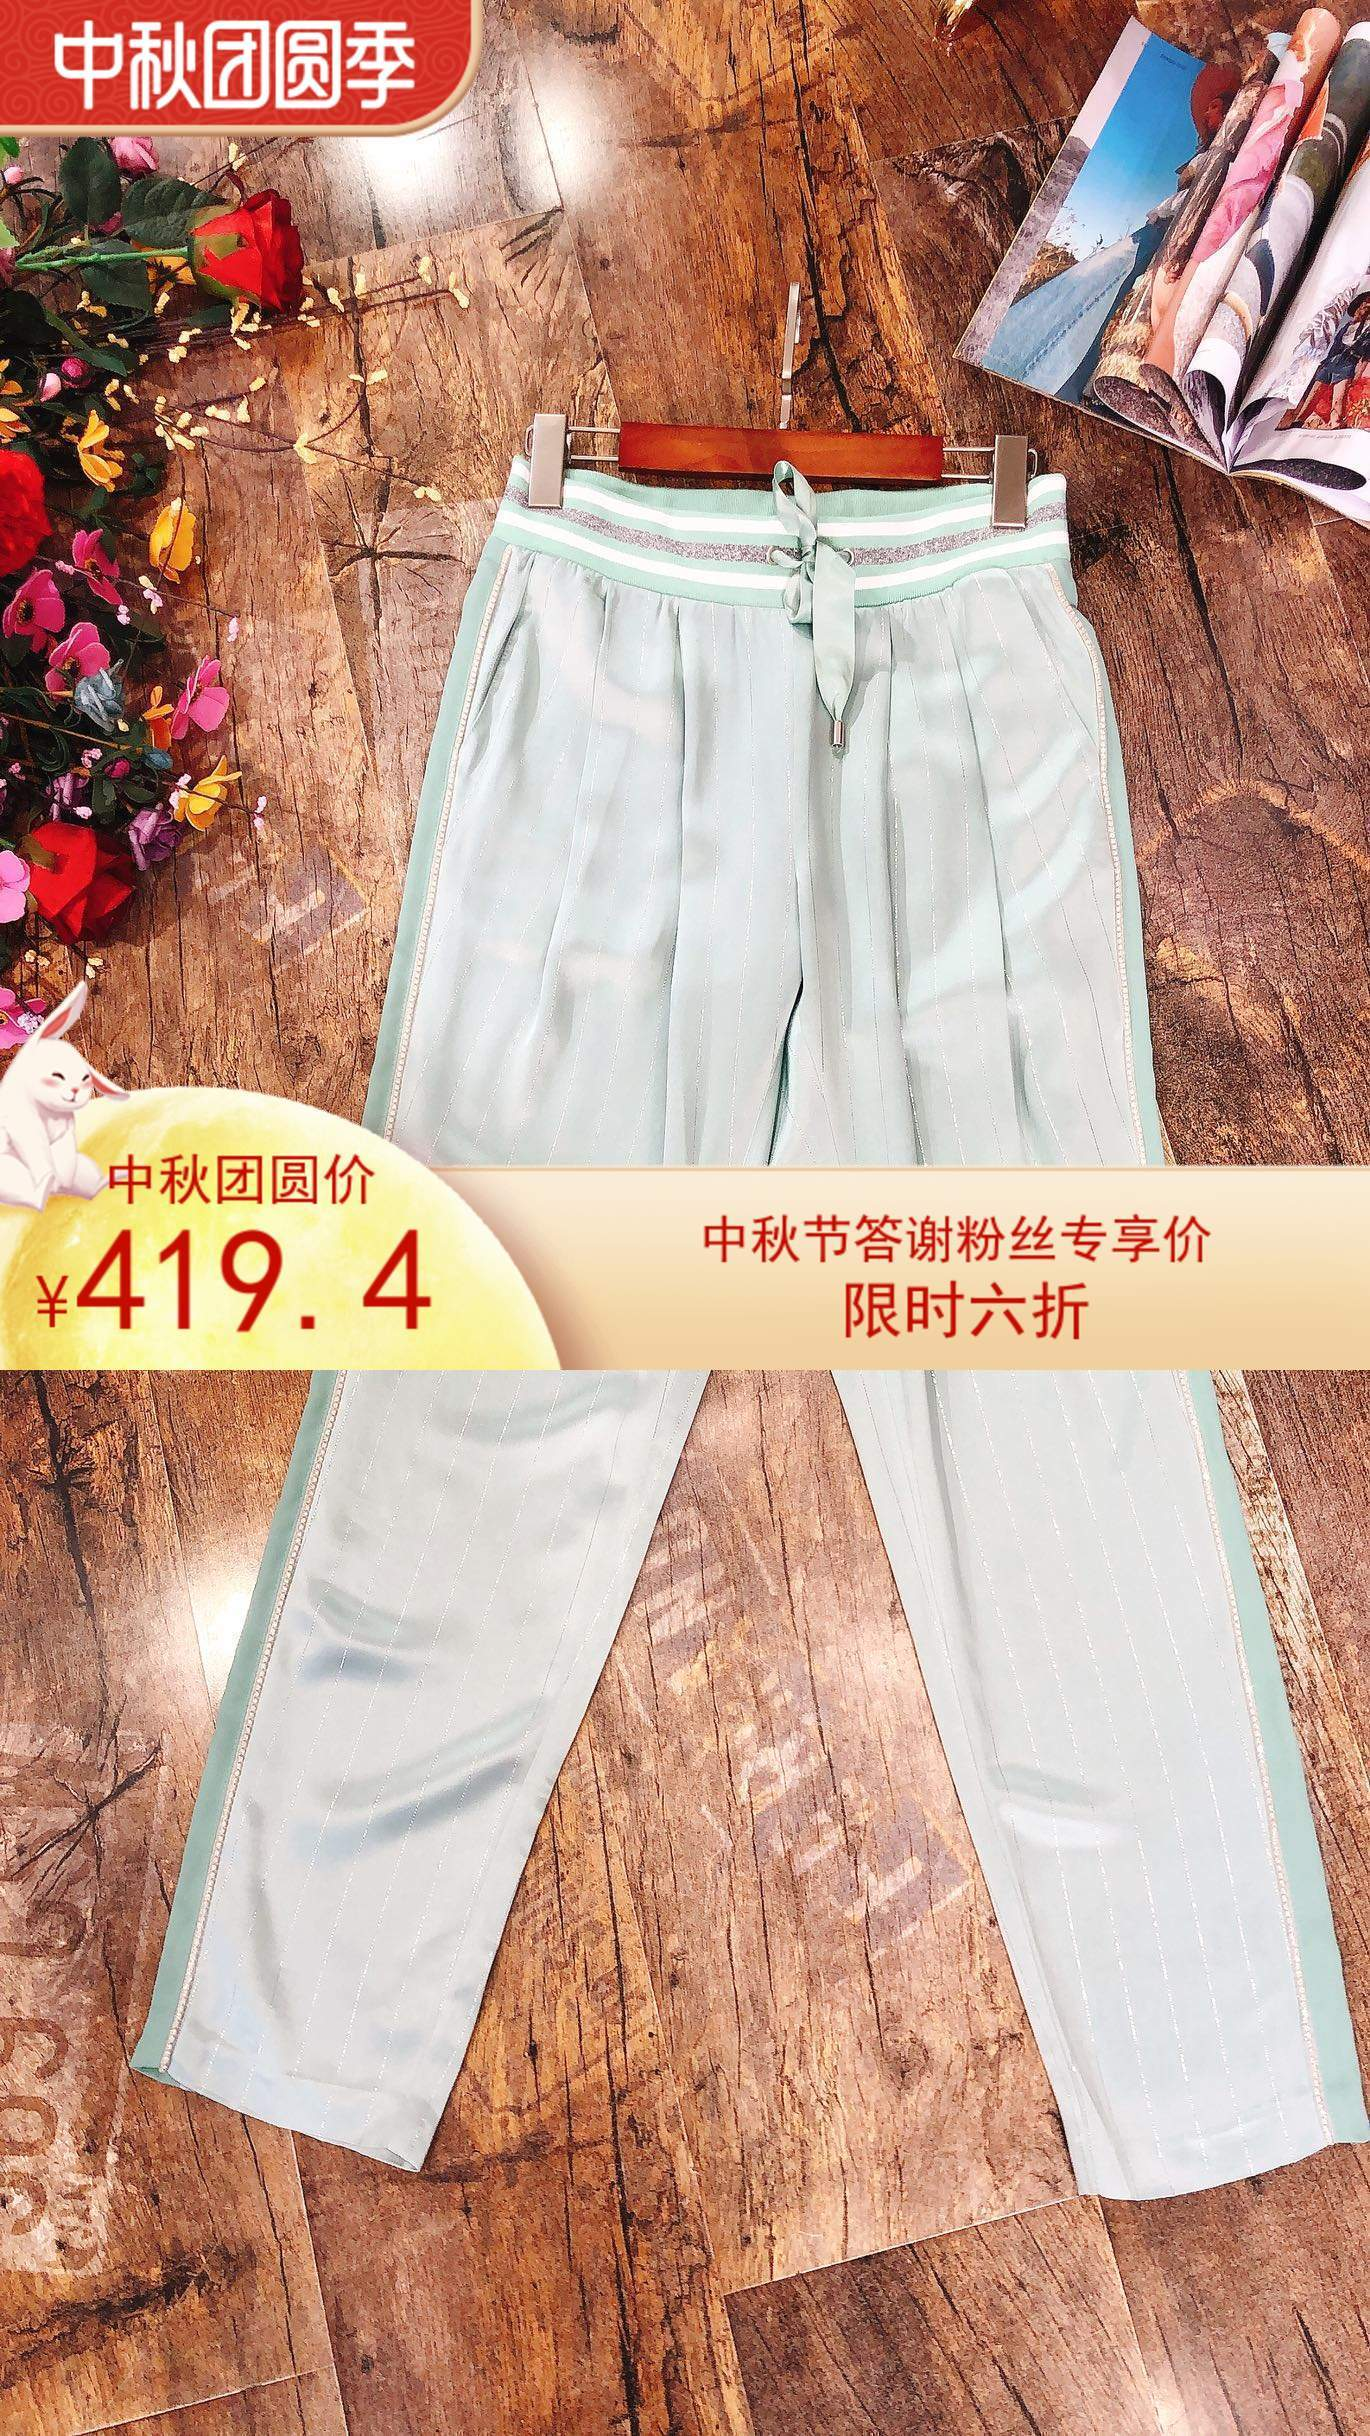 Attinas original high-end customized fabric bag and diamond splicing heavy industry embroidery bright line and ankle casual pants